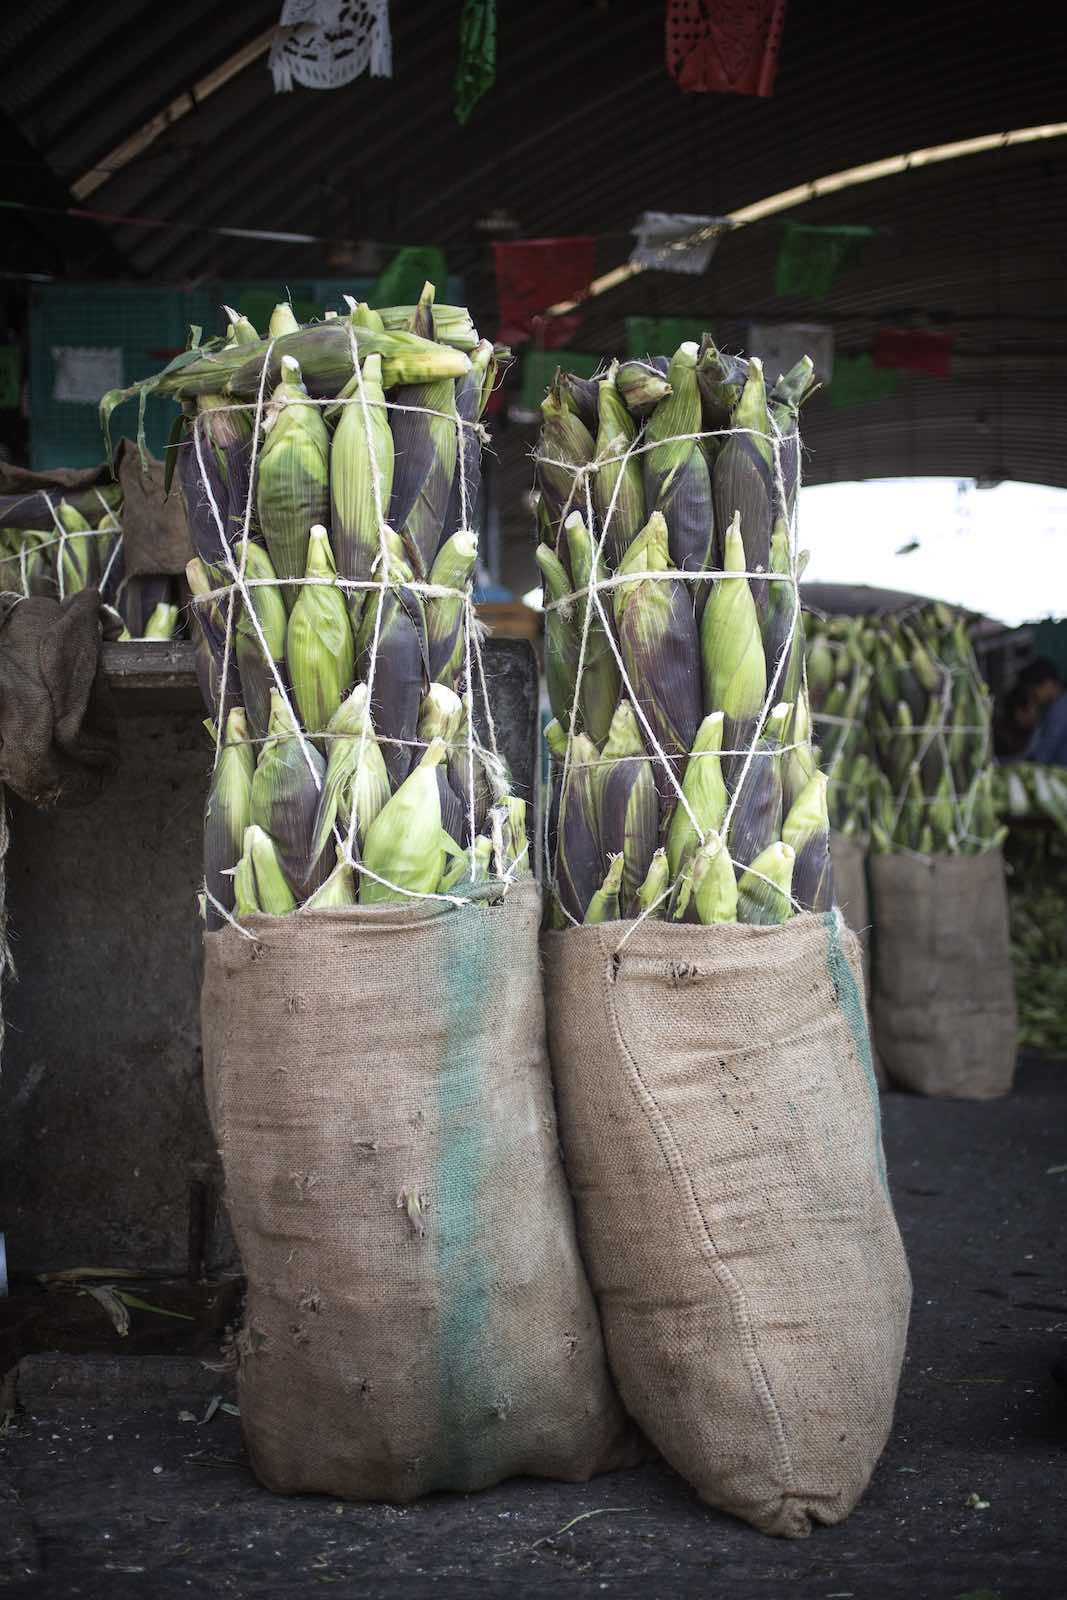 Ears of corn tied in burlap sacks and placed on the floor of the market.